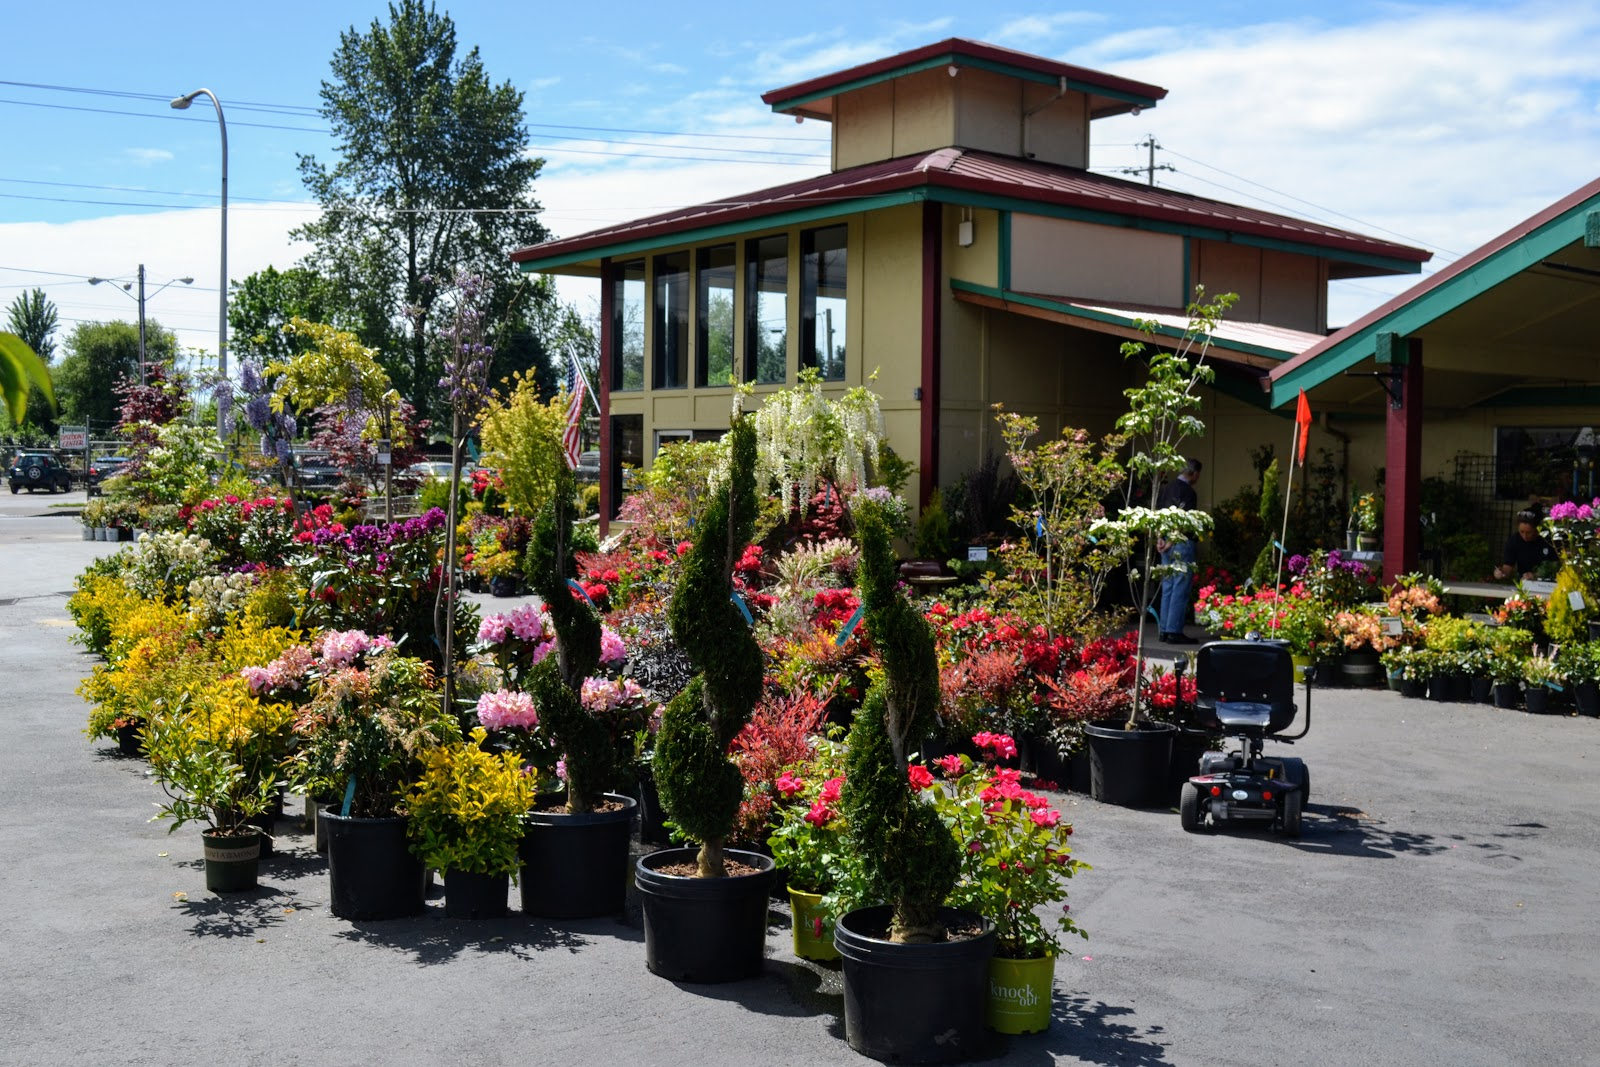 The First Stop On Way Was Tsugawa Nursery In Woodland Washington Very Close To Oregon Border Come With Me And Enjoy Explosion Of Color